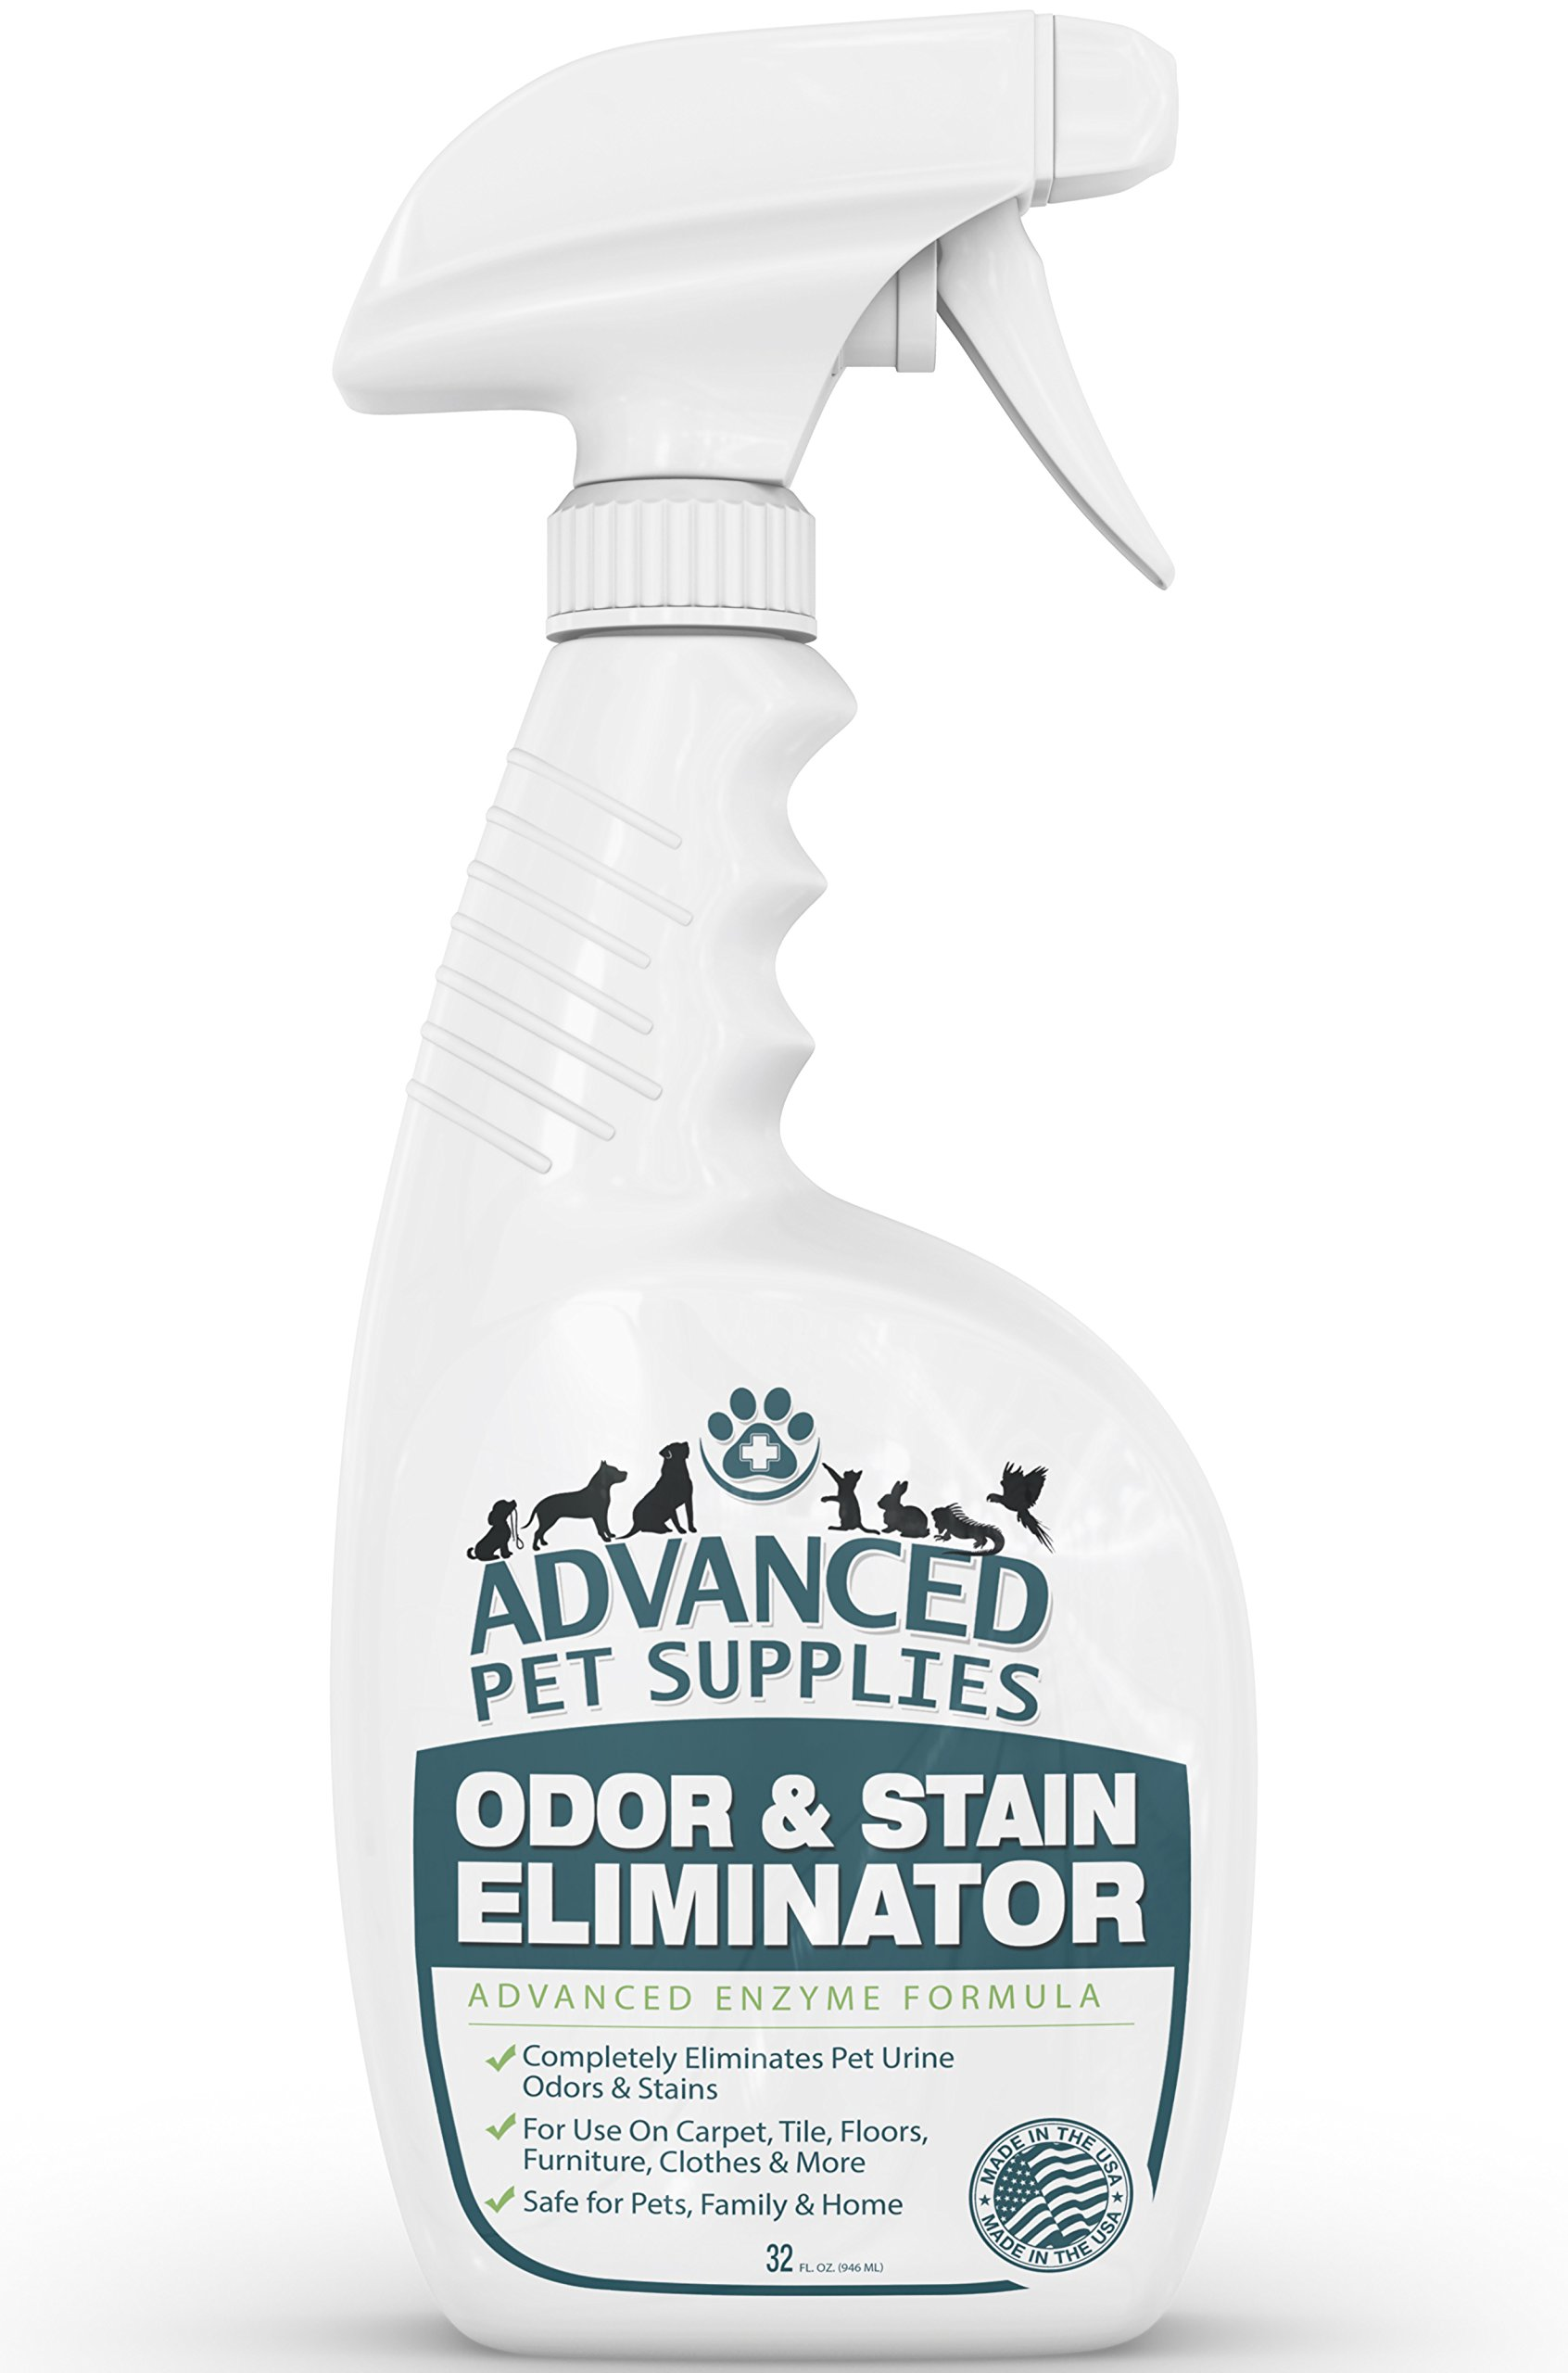 Advanced Pet Supplies Odor Eliminator and Stain Remover Carpet Cleaner with Odor Control Technology, Cat Urine and Dog Pee Neutralizer Spray, Professional Strength Enzymatic Solution, 32 ounce